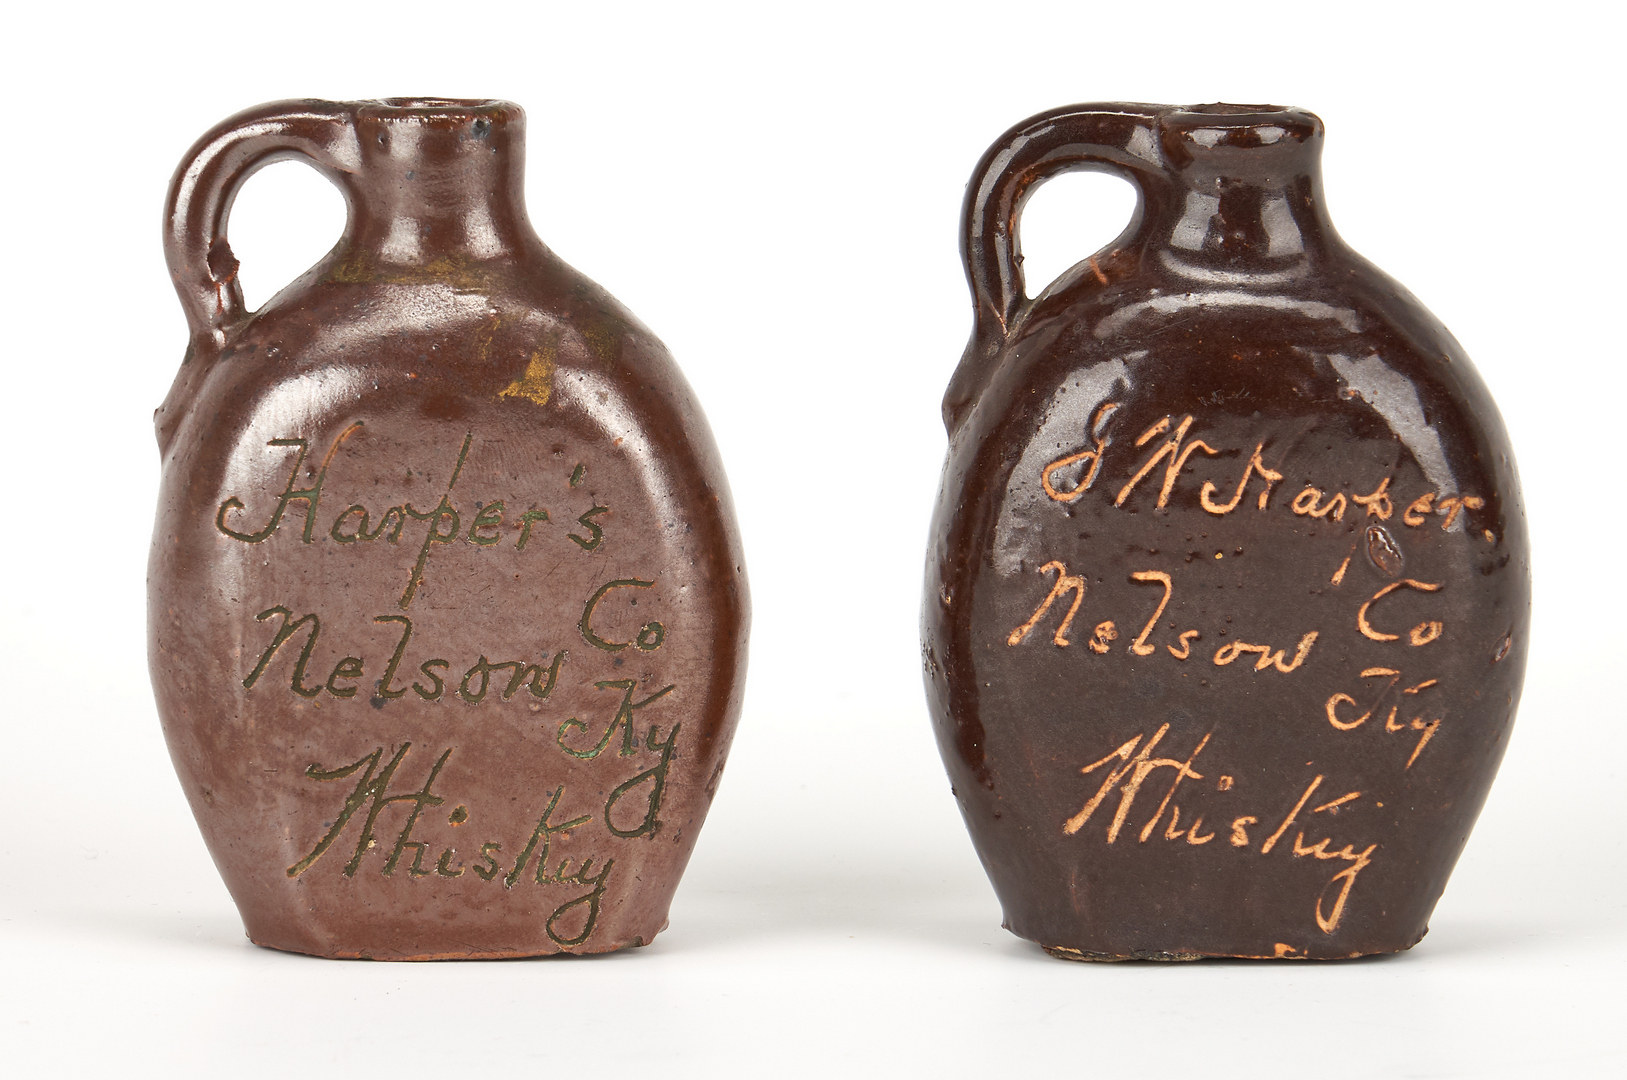 Lot 851: 5 Kentucky I. W. Harper Stoneware Advertising Jugs